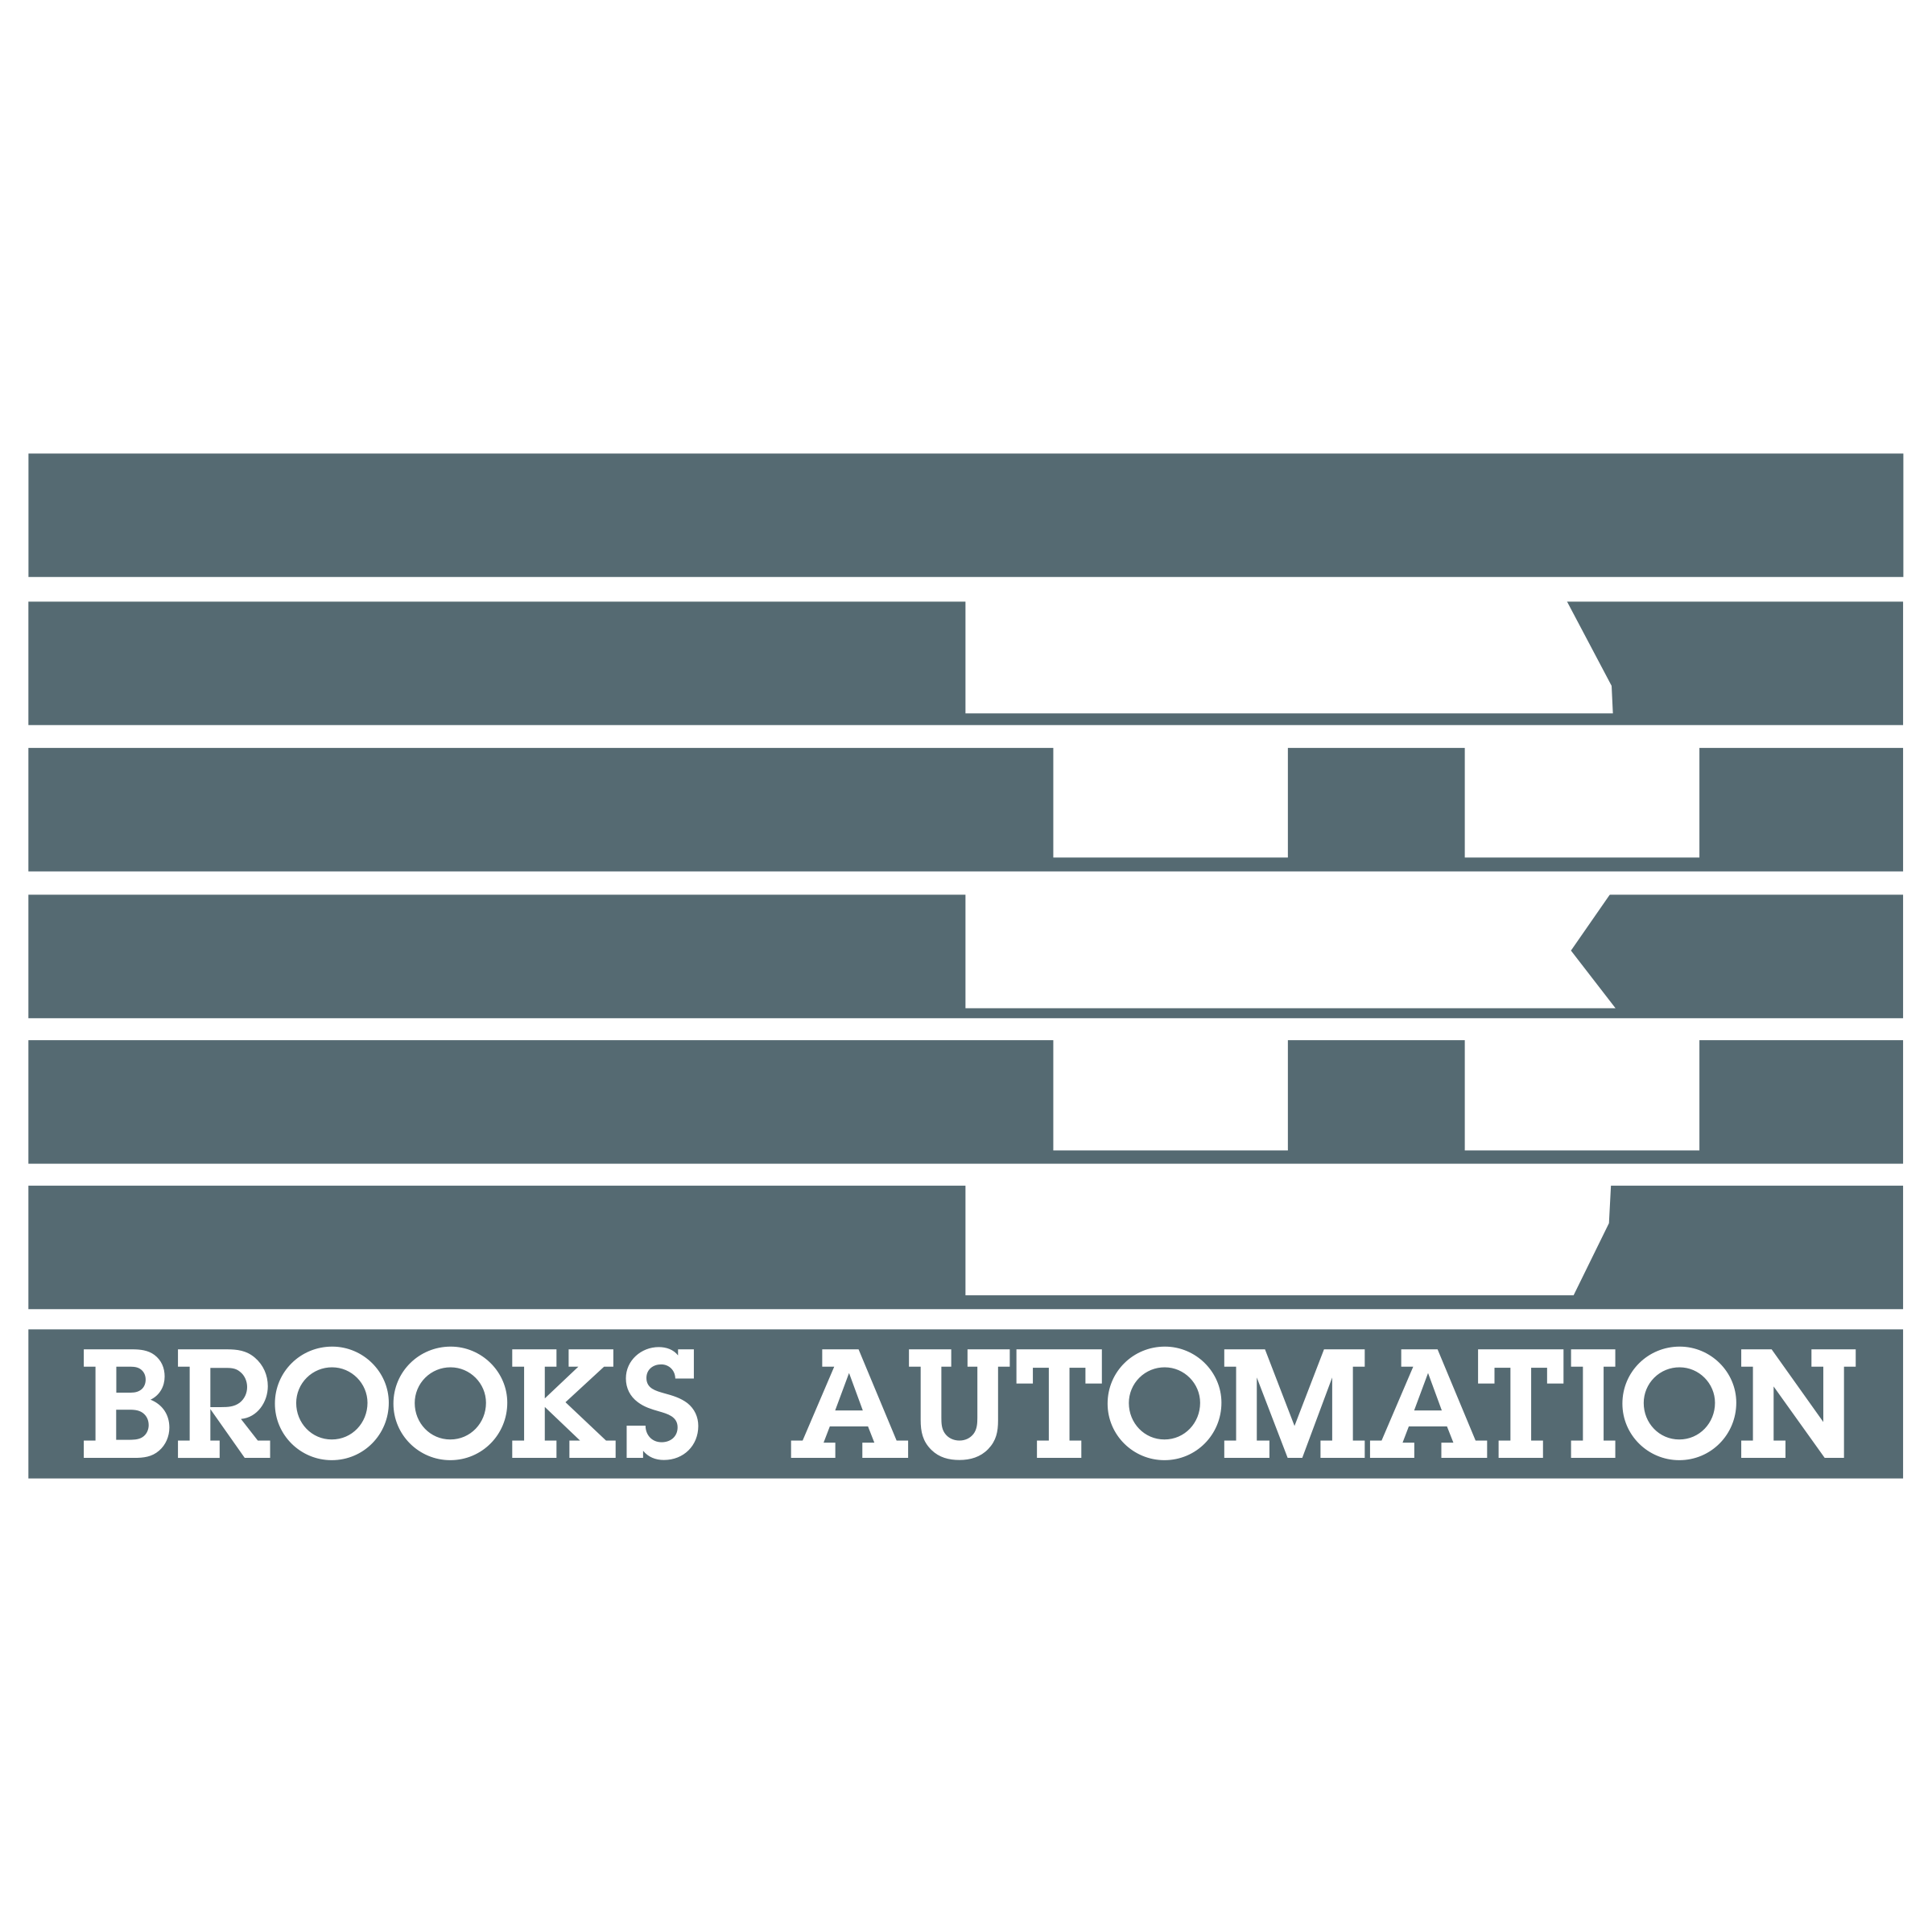 Brooks Automation.png